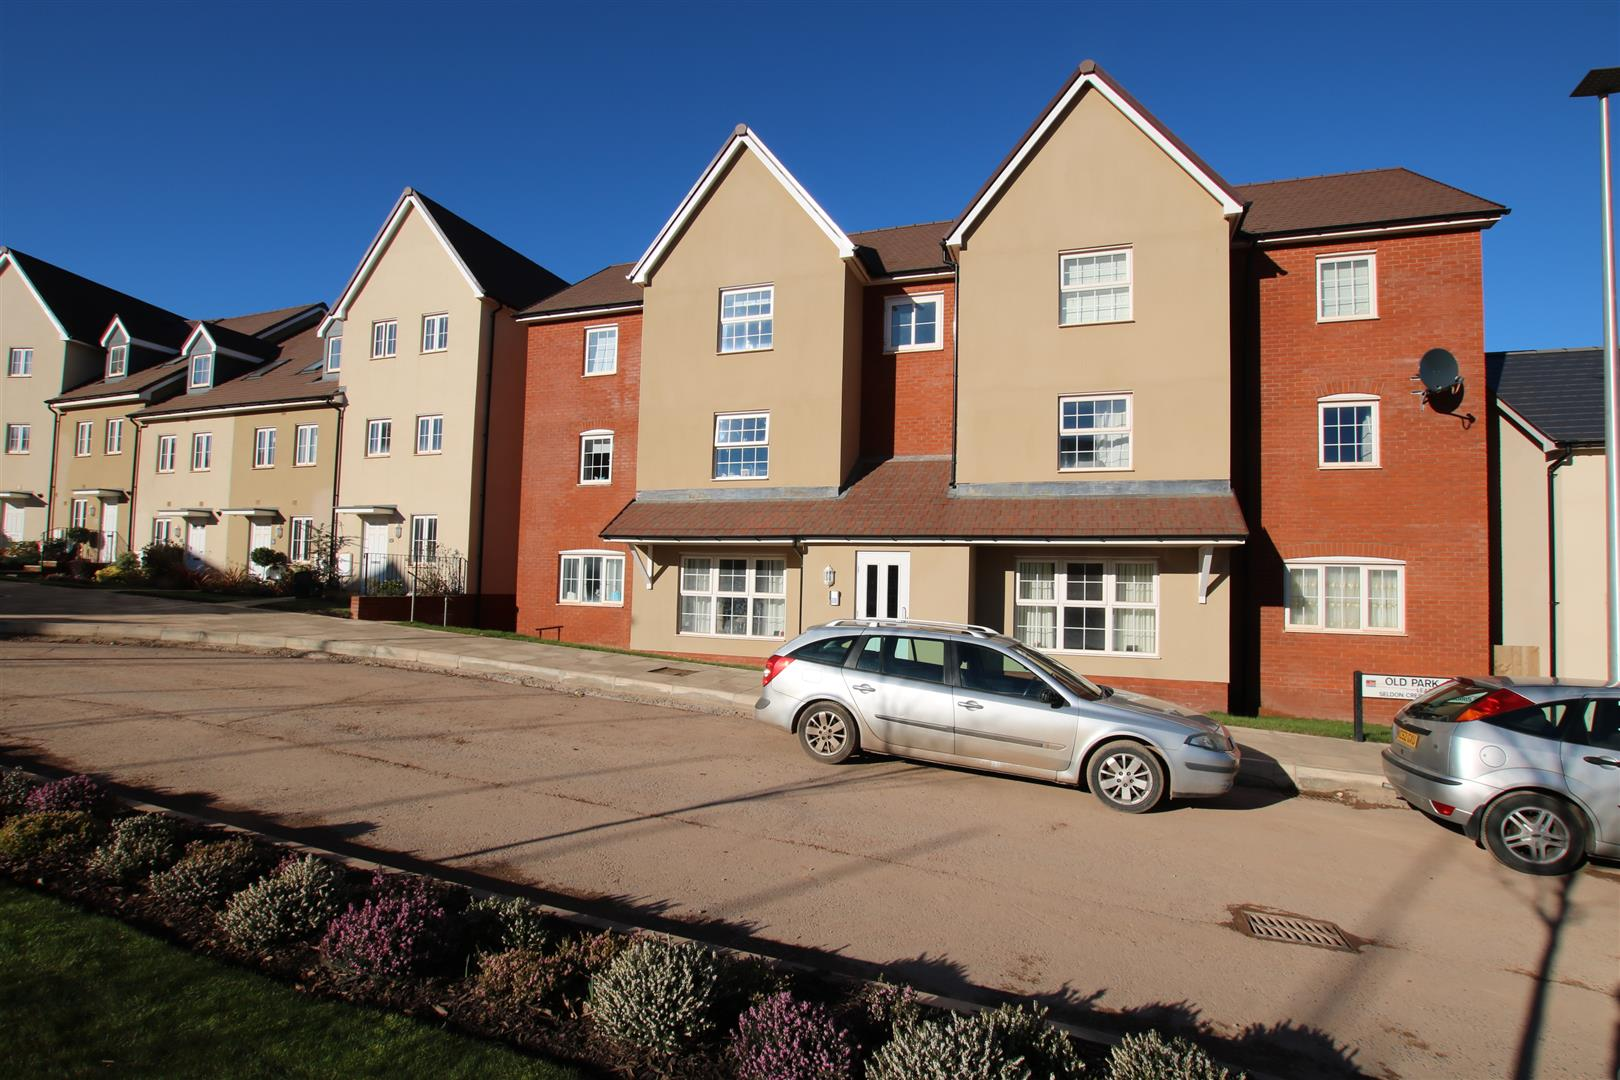 2 Bedrooms Ground Flat for sale in Old Park Avenue, Hillside Gardens, Exeter